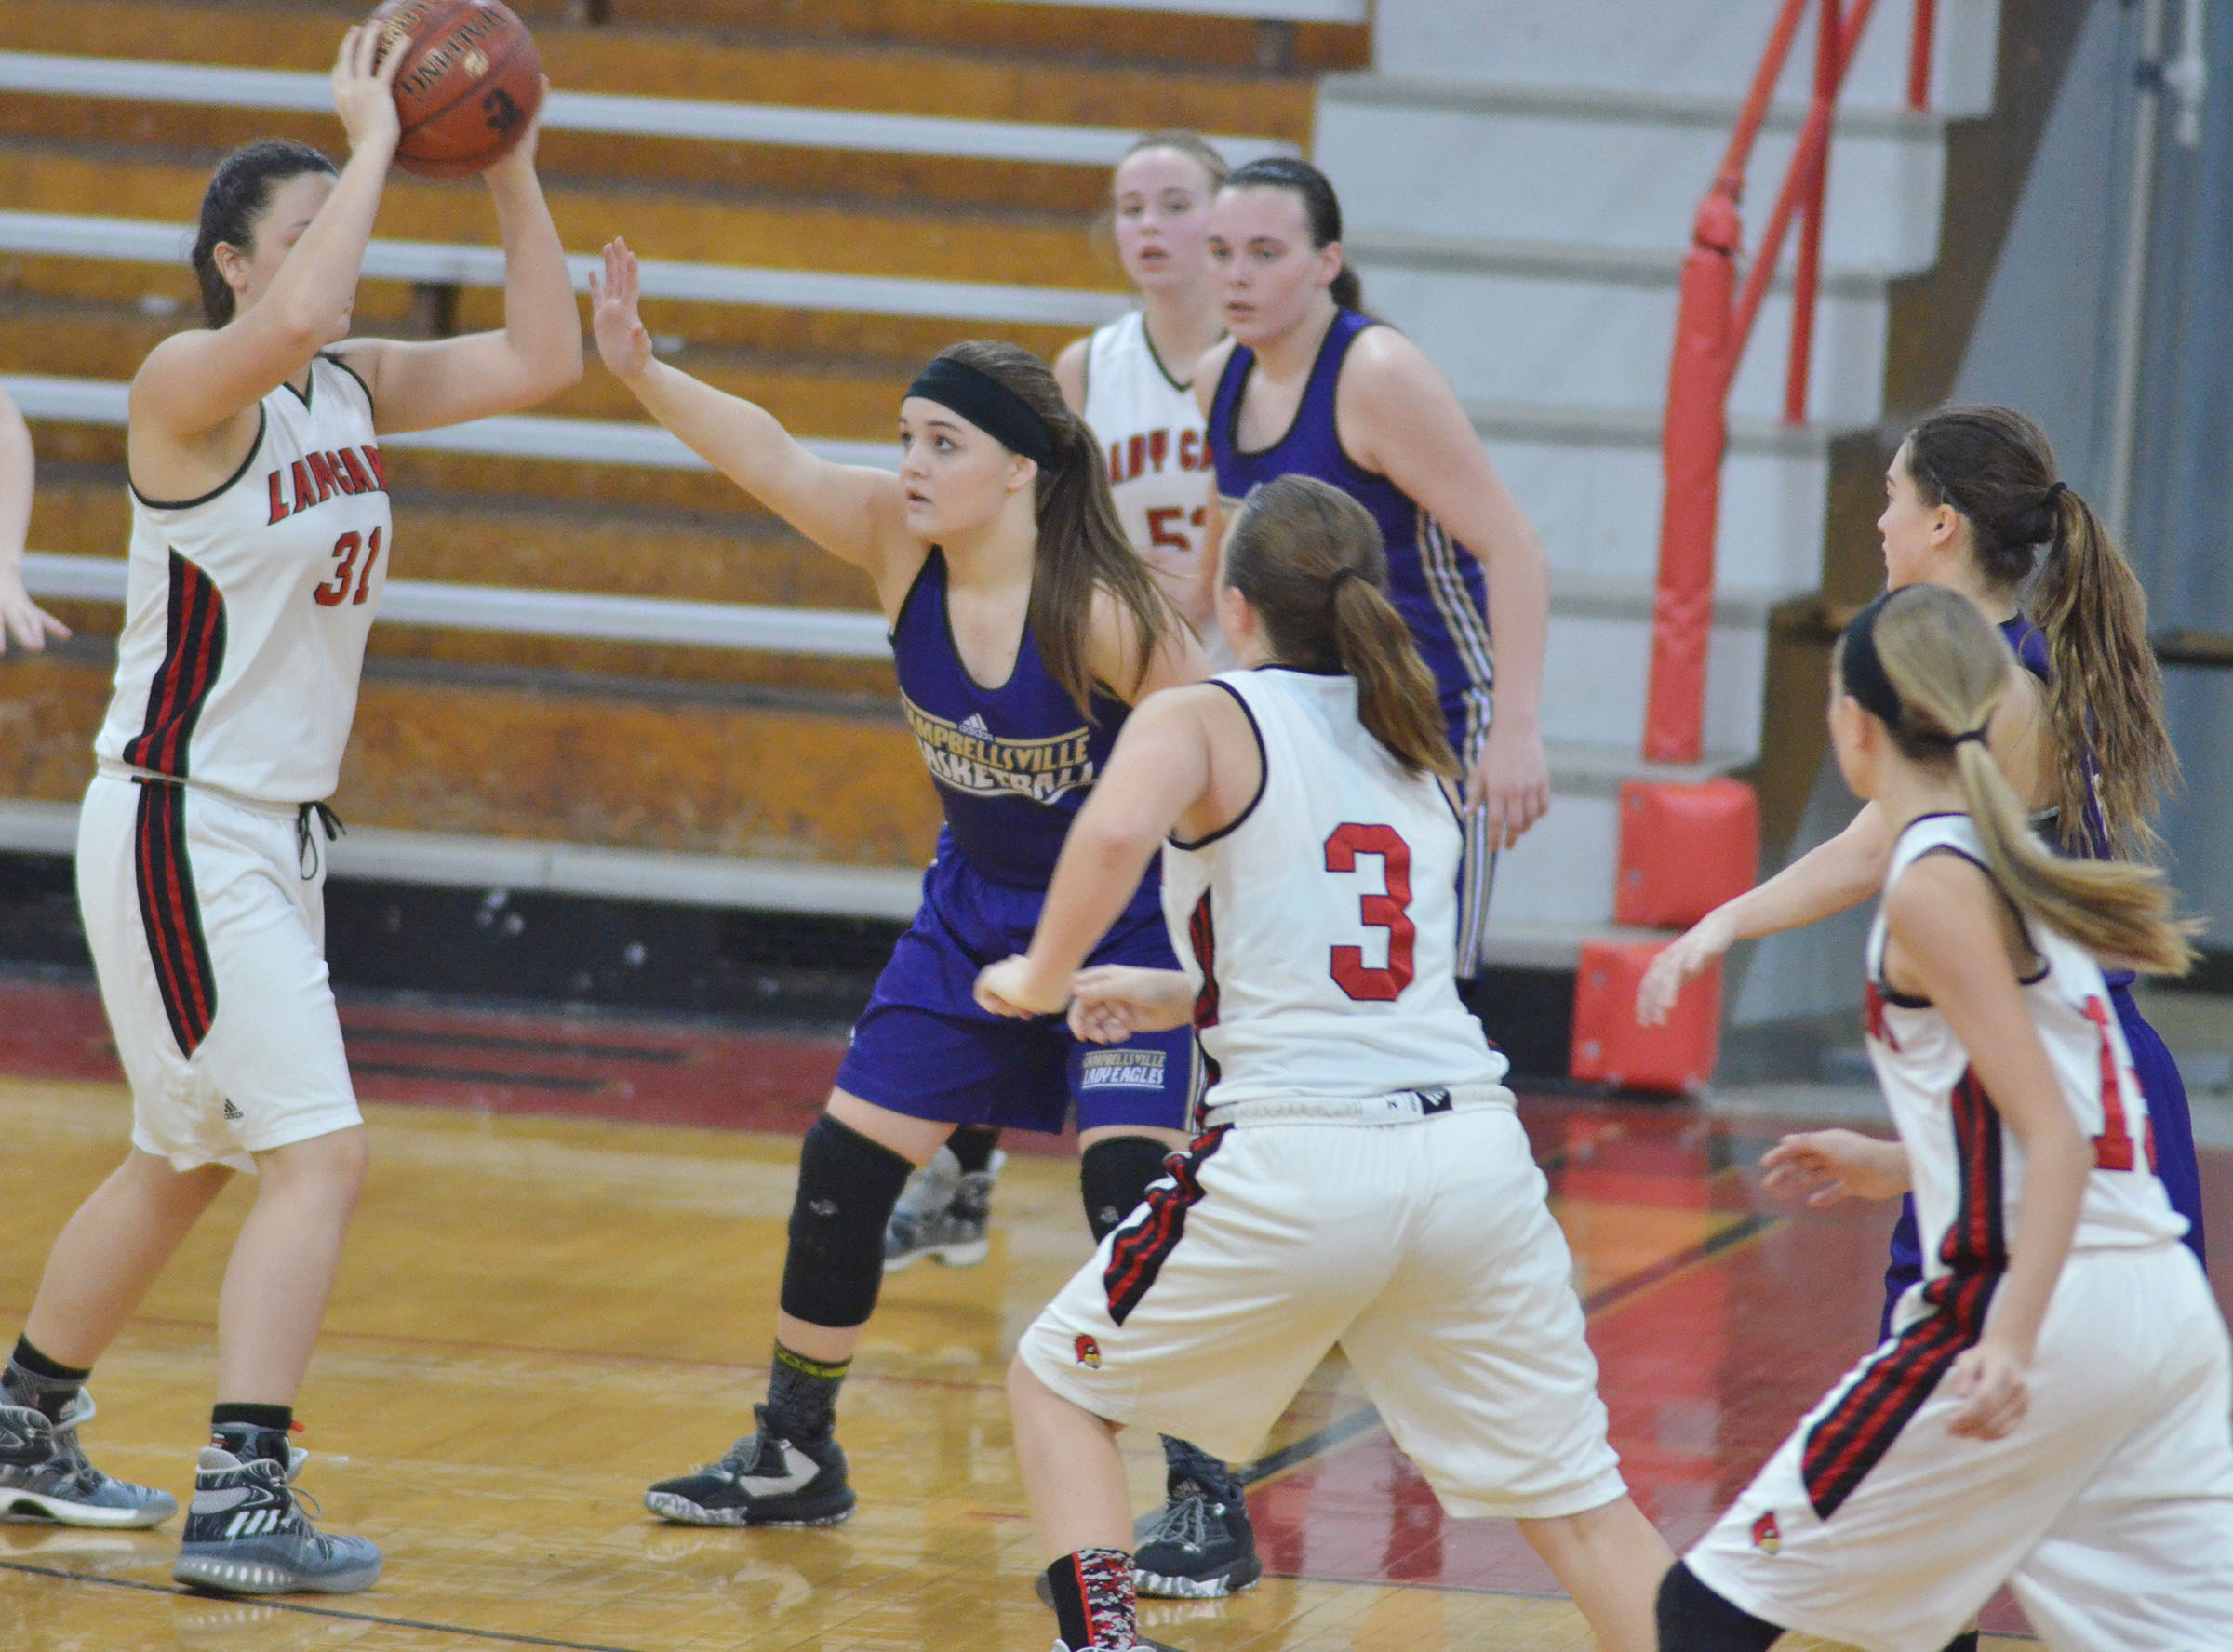 Campbellsville Middle School eighth-grader Kenzi Forbis plays defense.